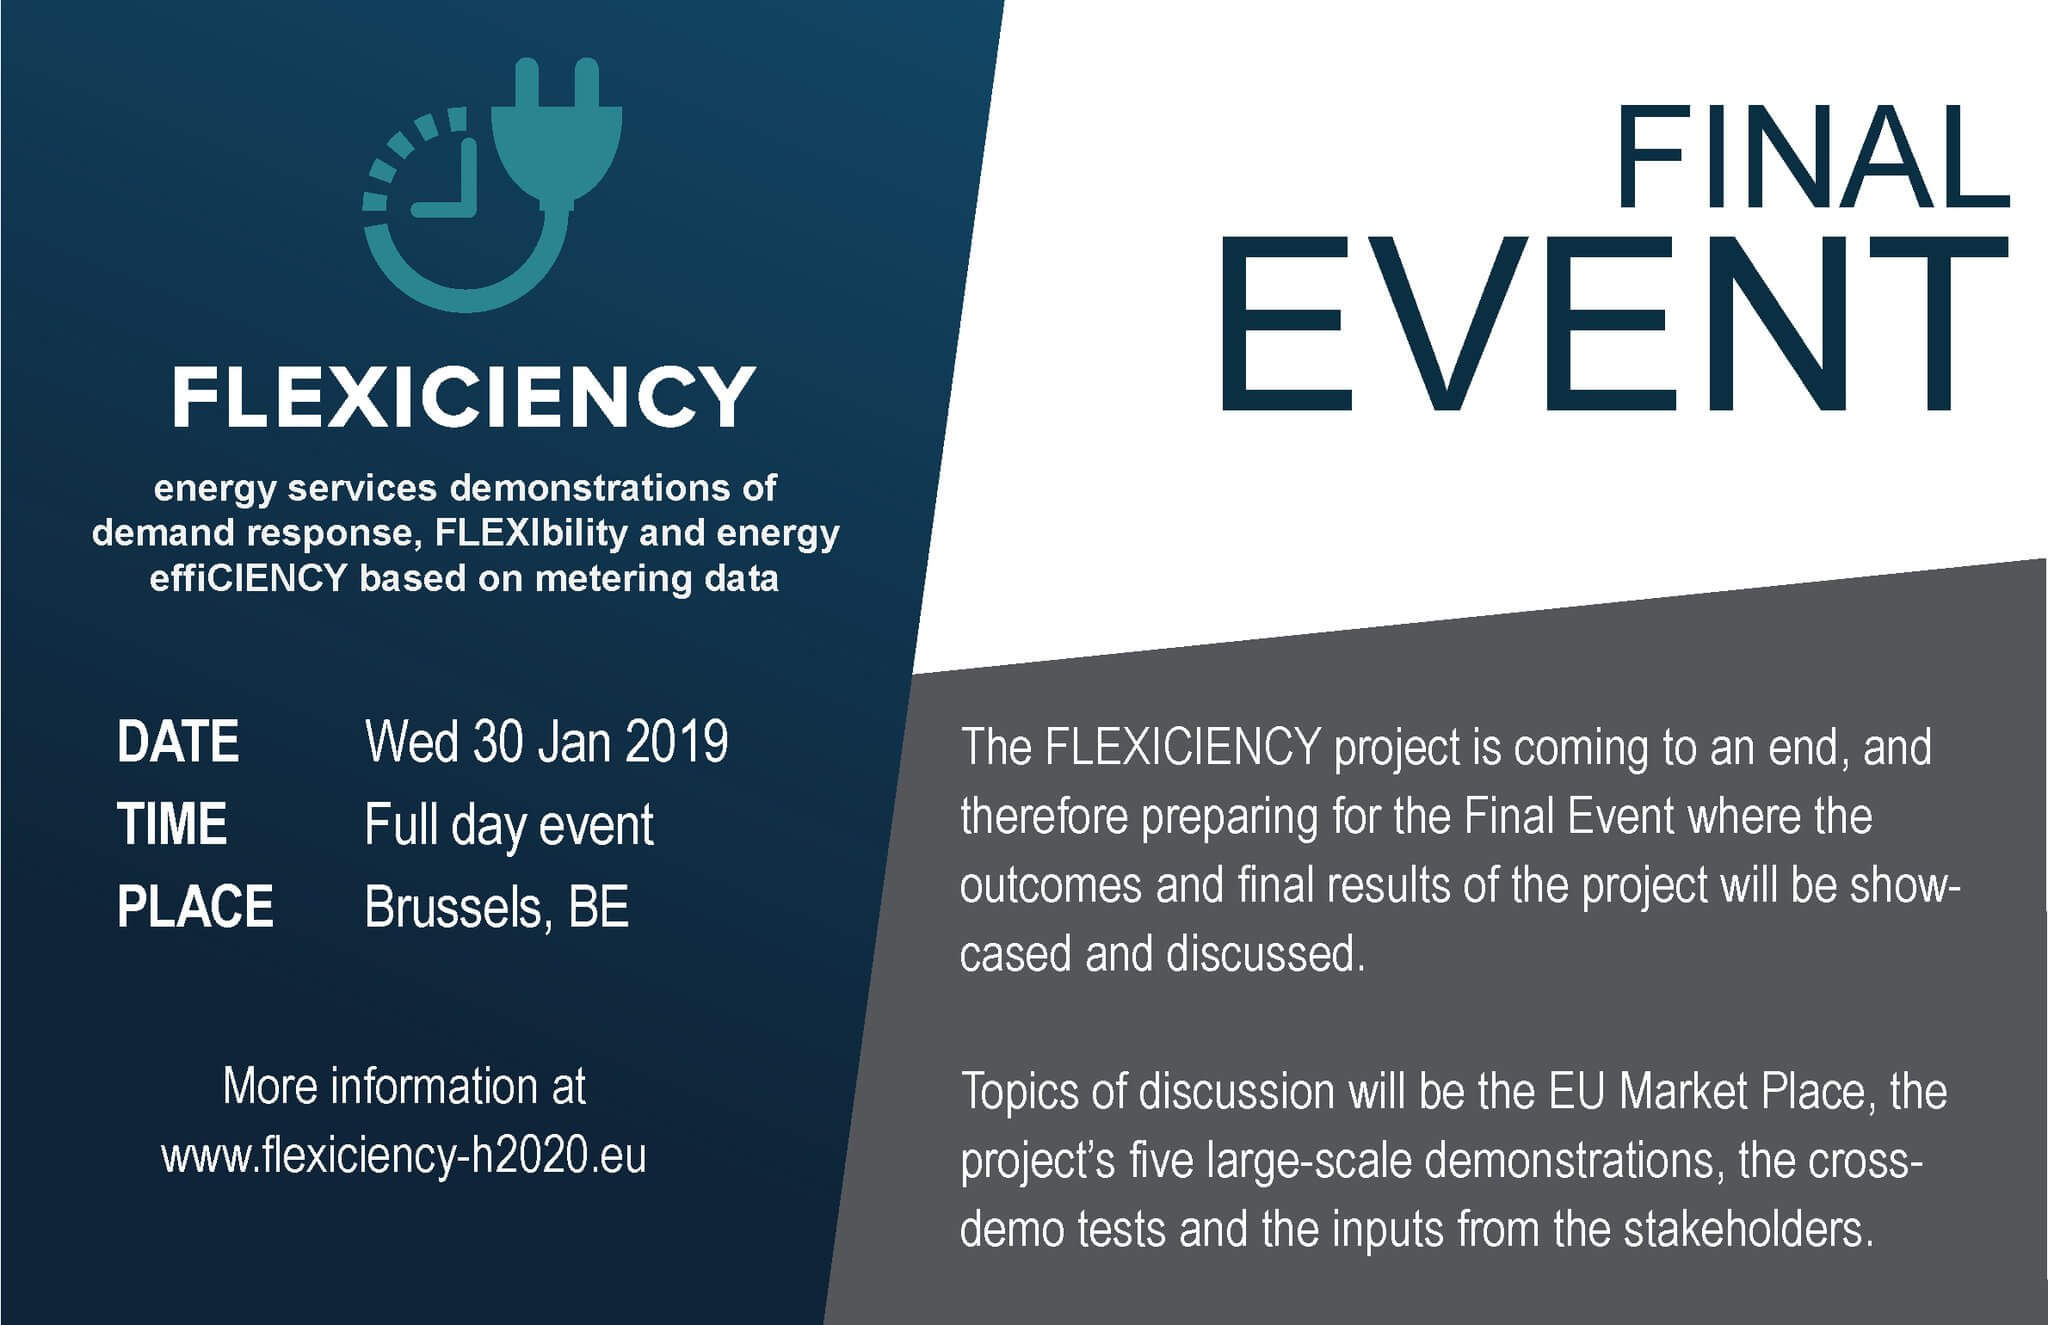 Flexiciency banner final event